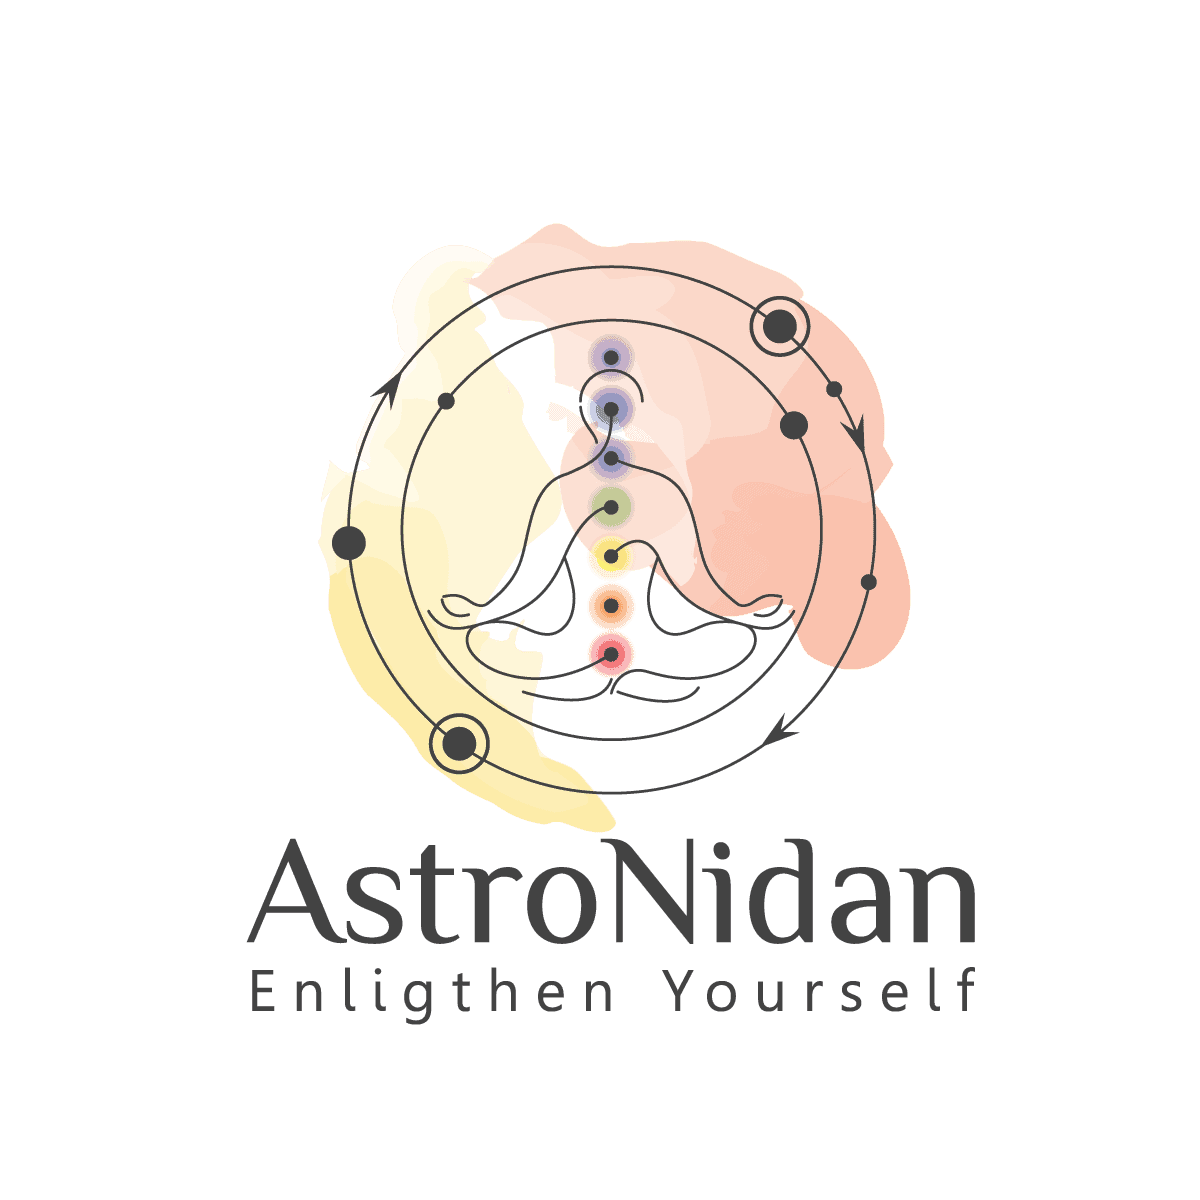 astronidan logo with name and tagline for astrology predictions, kundali matching / horoscope matching @ AstroNidan